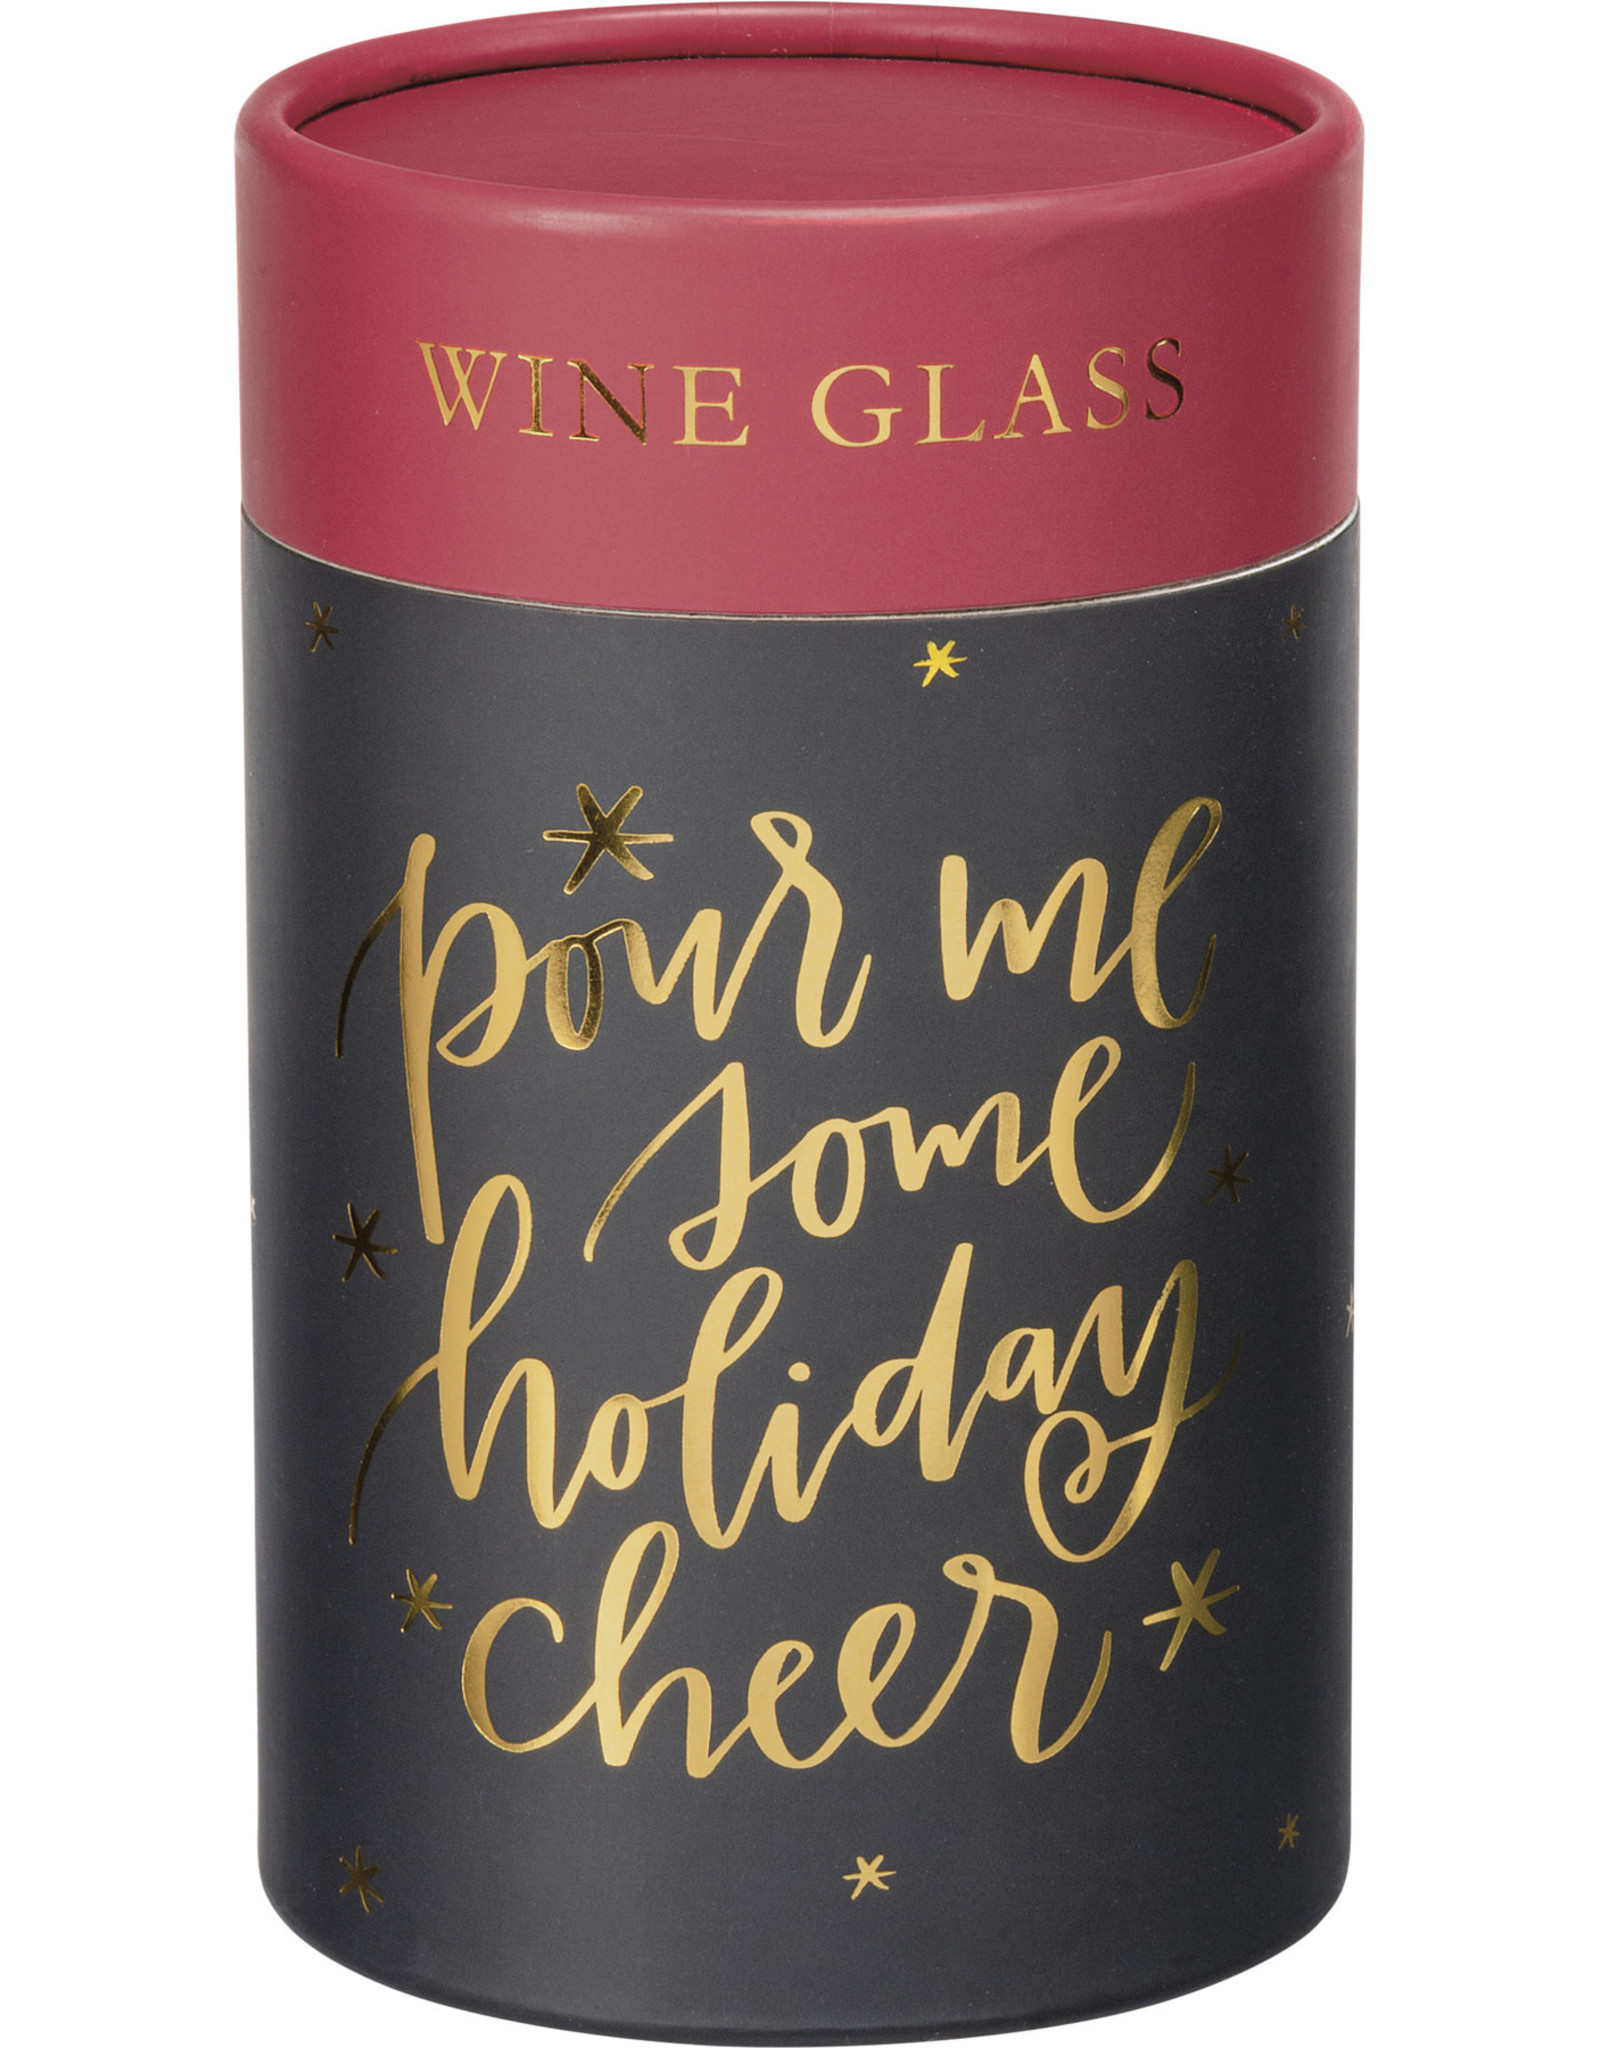 Pour me some holiday cheer wine gift box